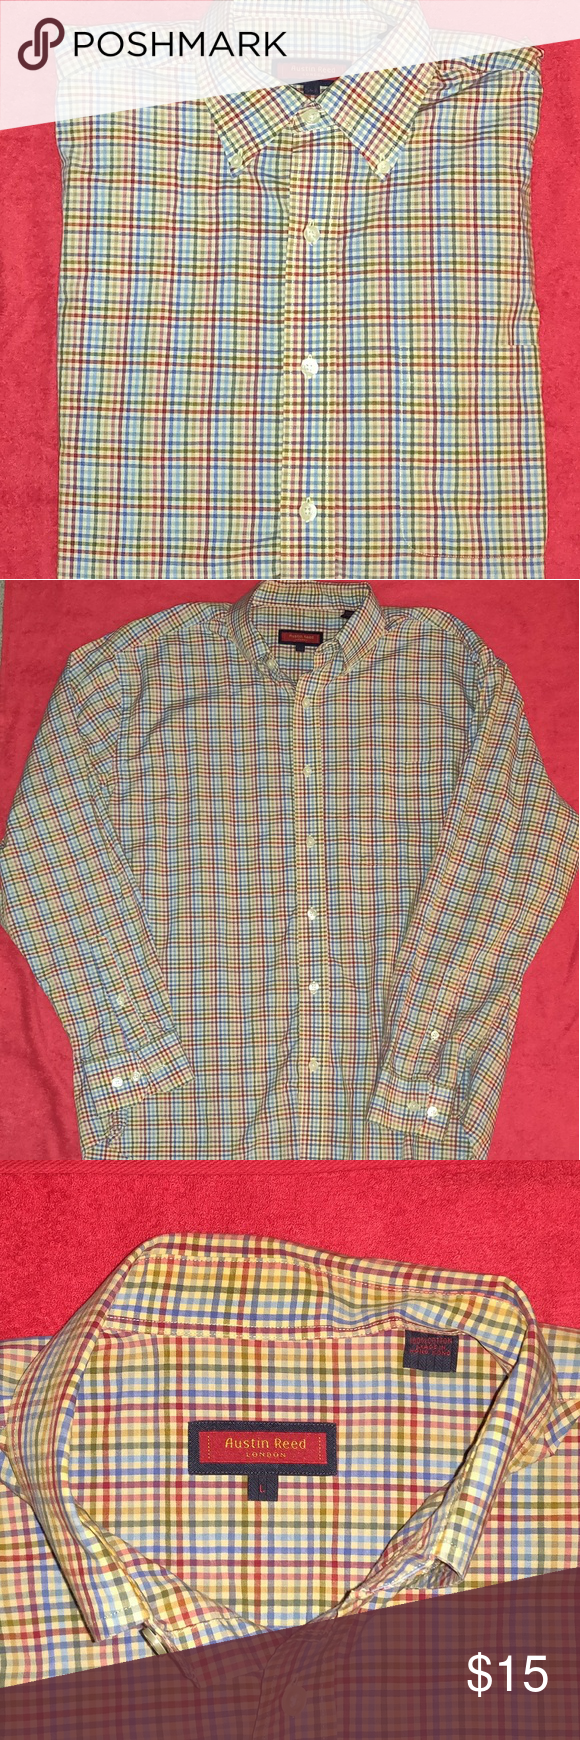 Austin Reed London Casual Button Down Long Sleeve Casual Cotton Austin Reed Shirts Casual Button Down Shirts Casual Clothes Design Austin Reed